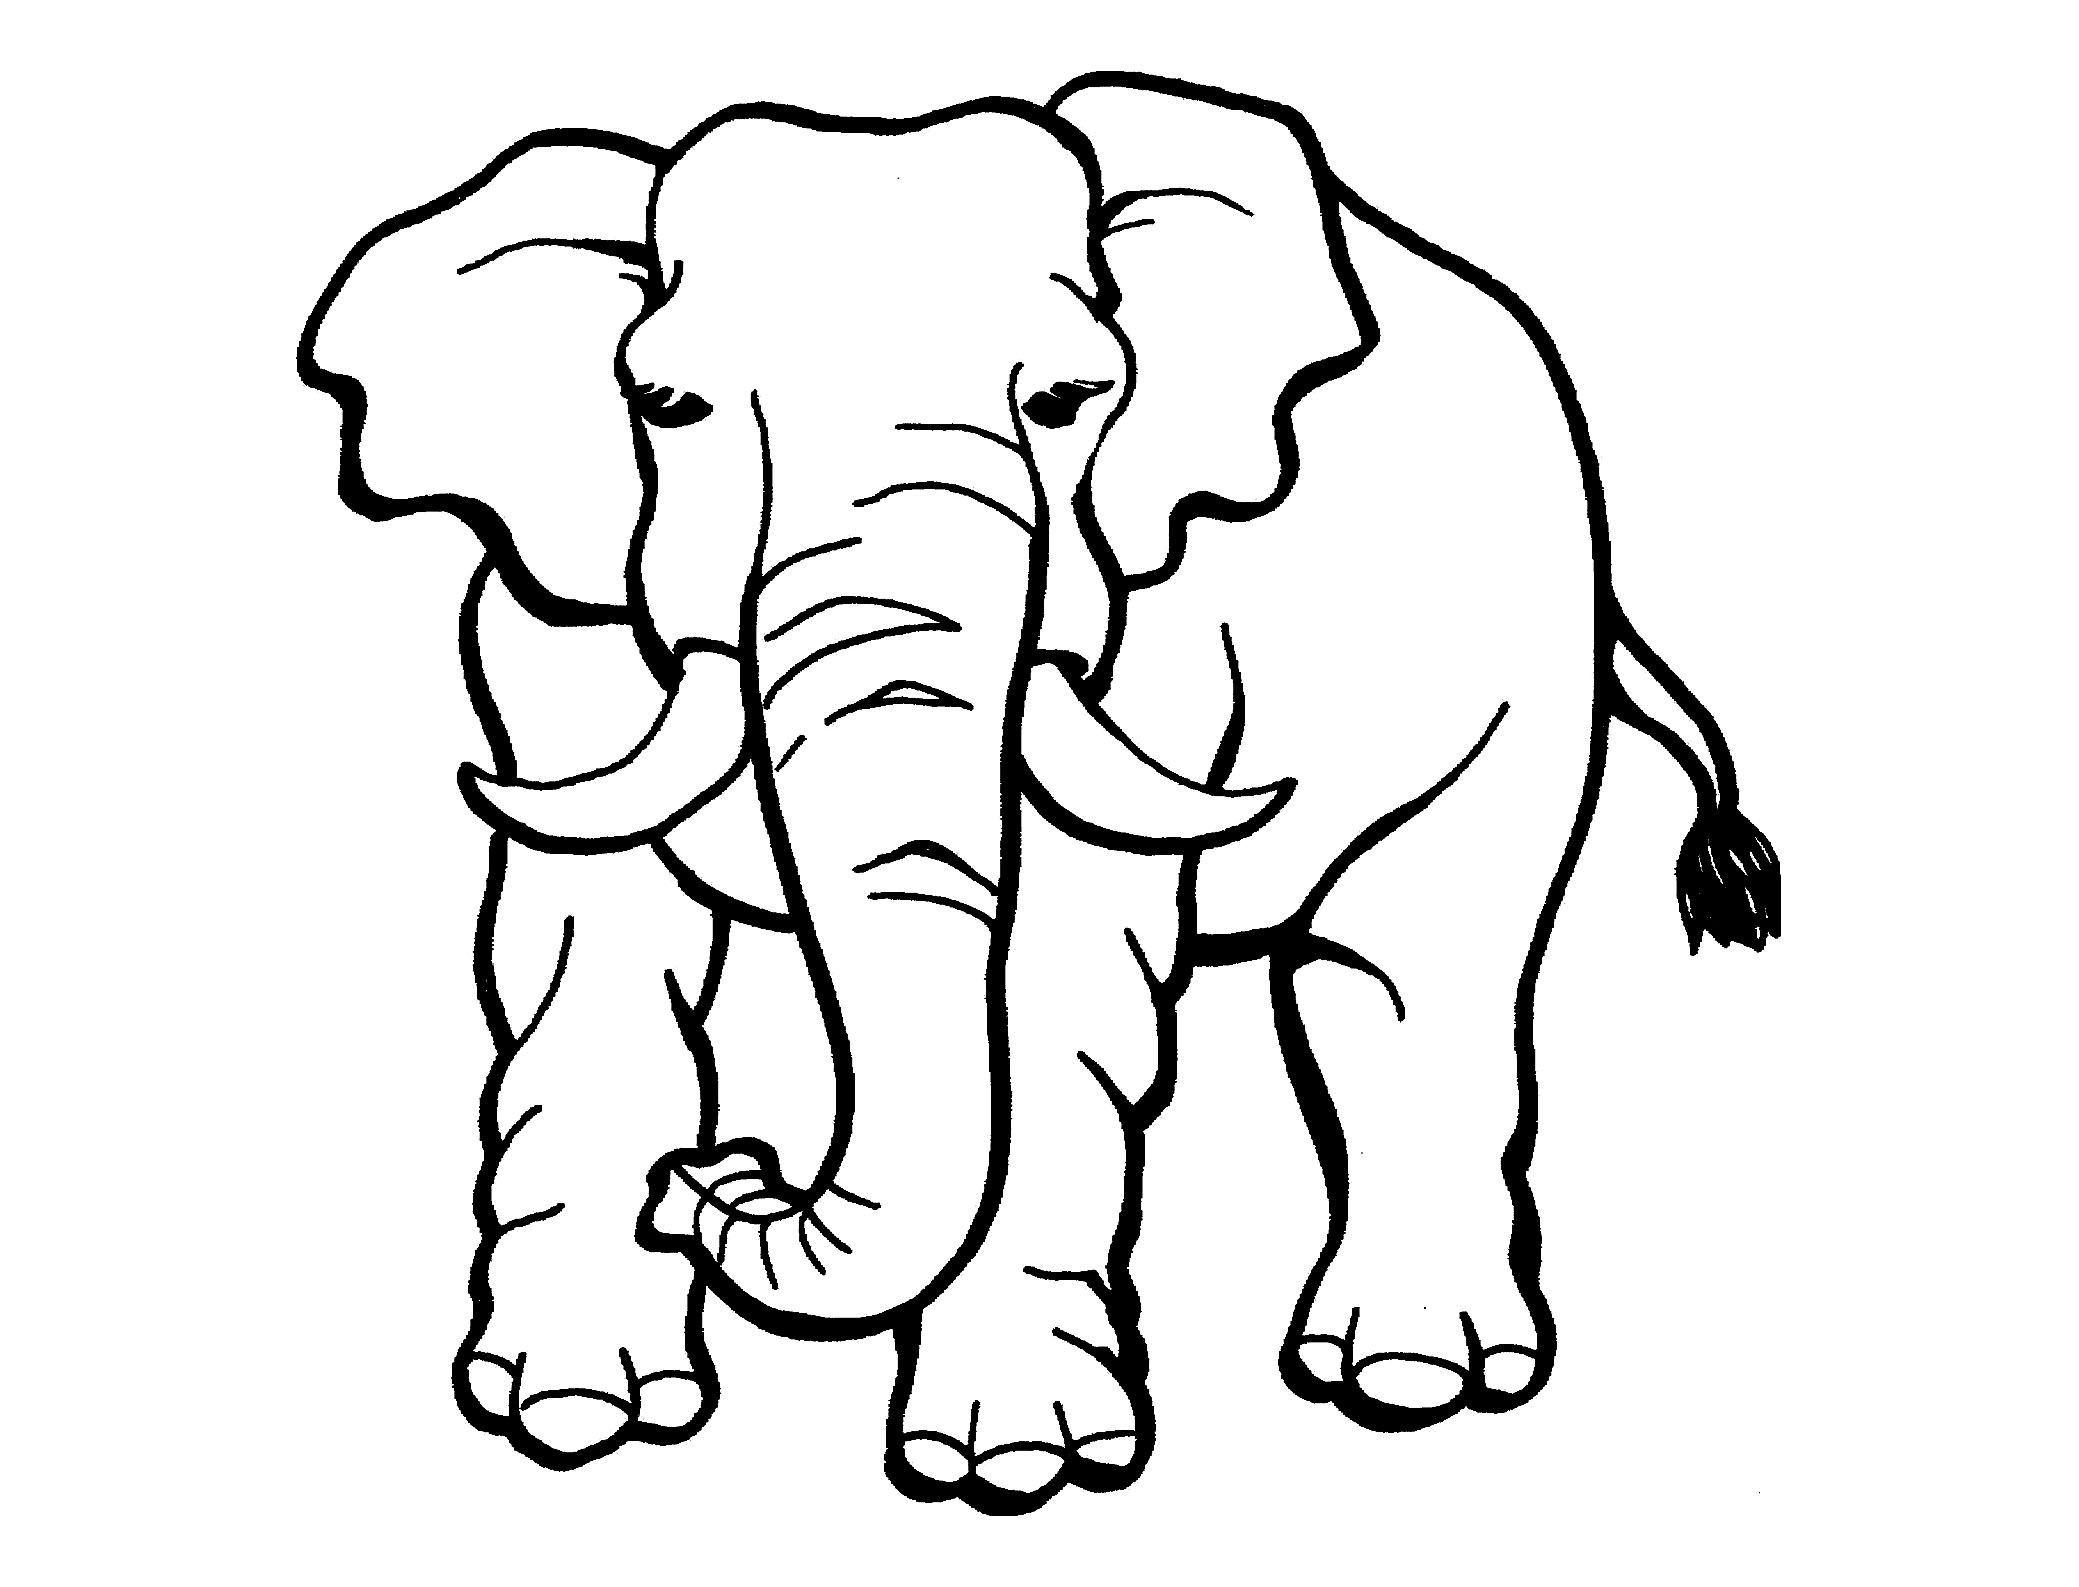 coloring pictures elephant get this hard elephant coloring pages for adults 247954 coloring elephant pictures